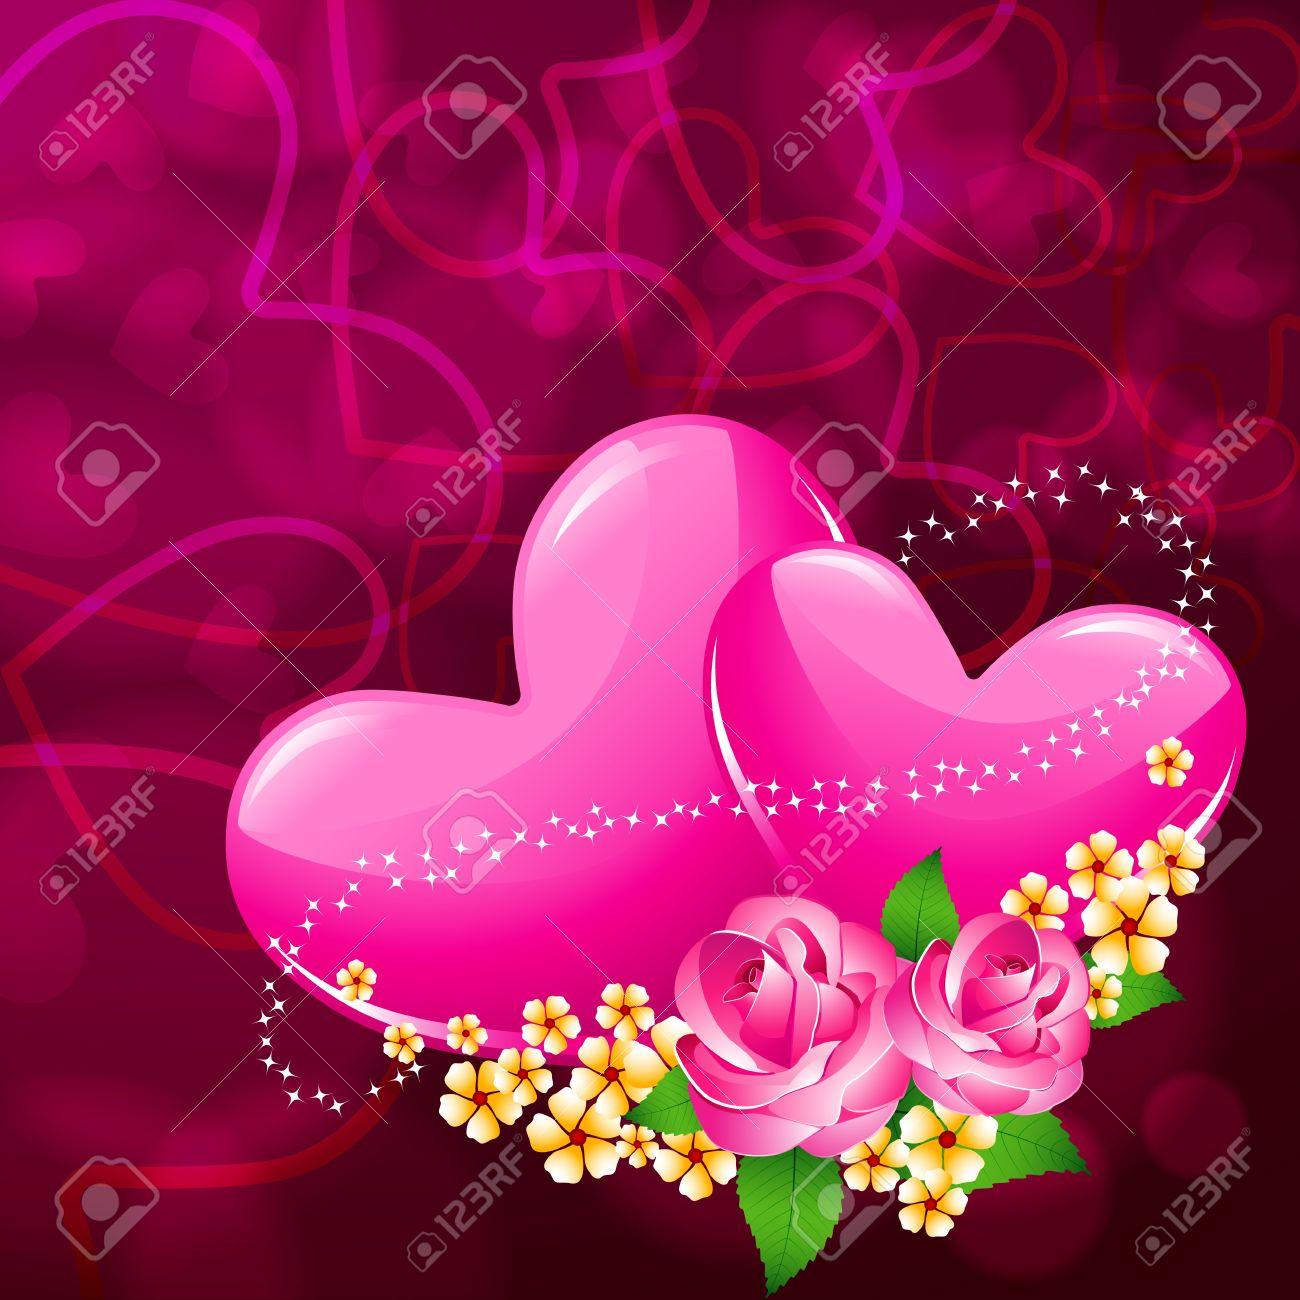 Illustration Of Pair Of Heart With Flower On Love Valentine Card